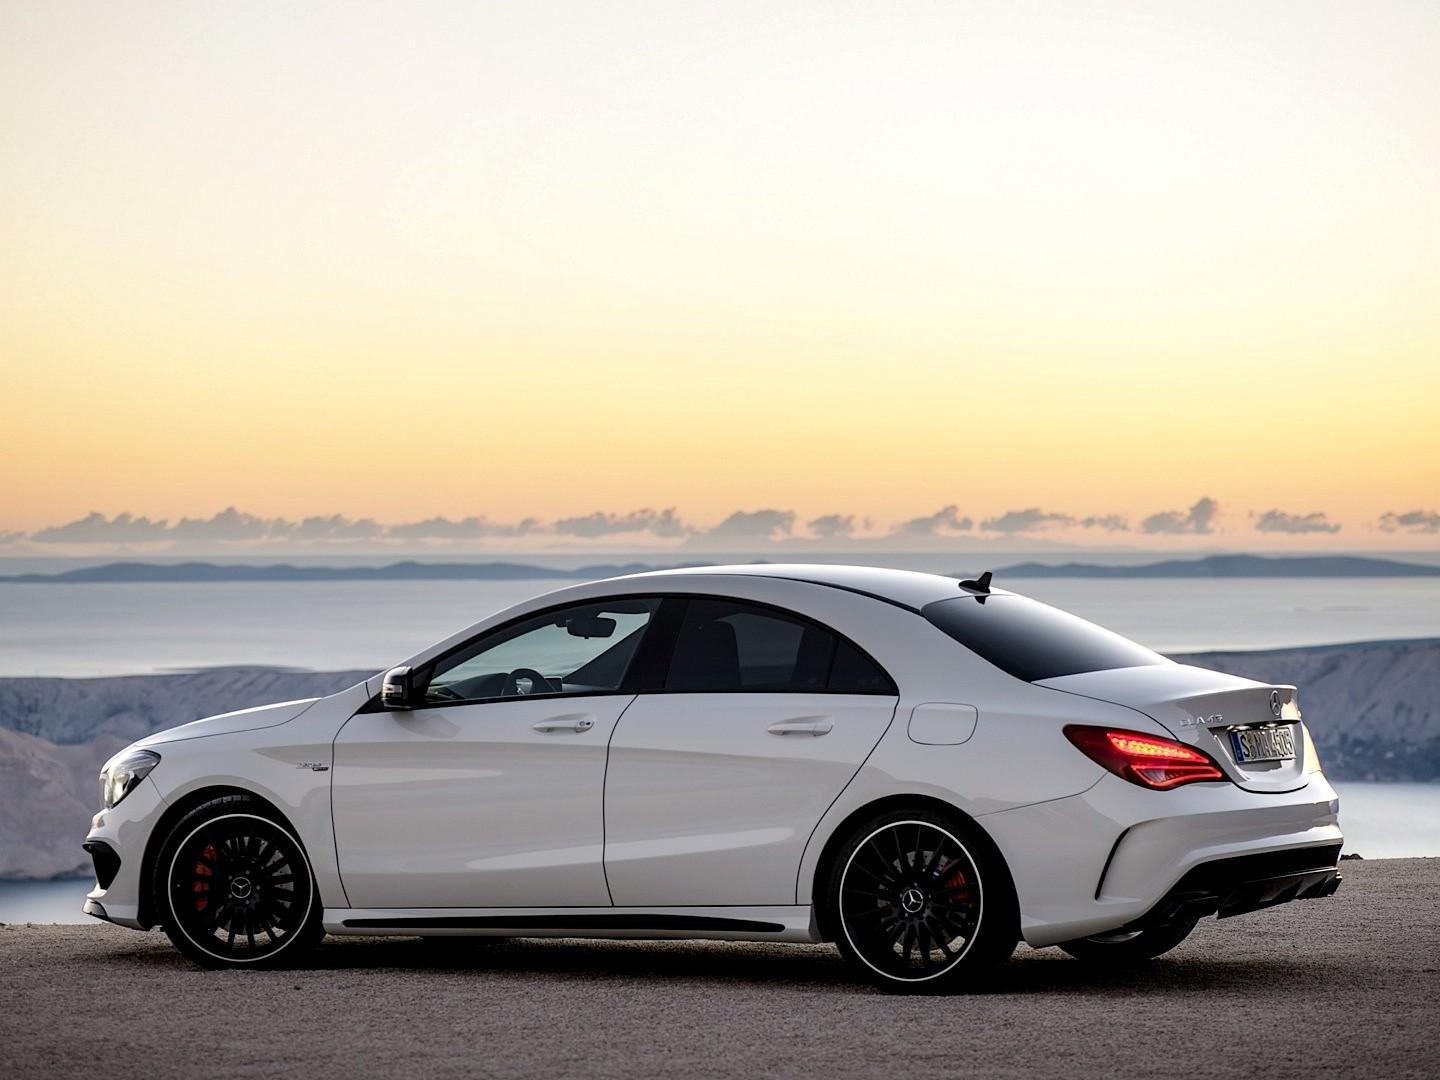 Mercedes Benz Cla >> Mercedes Benz Cla 45 Amg Wallpaper HD Download